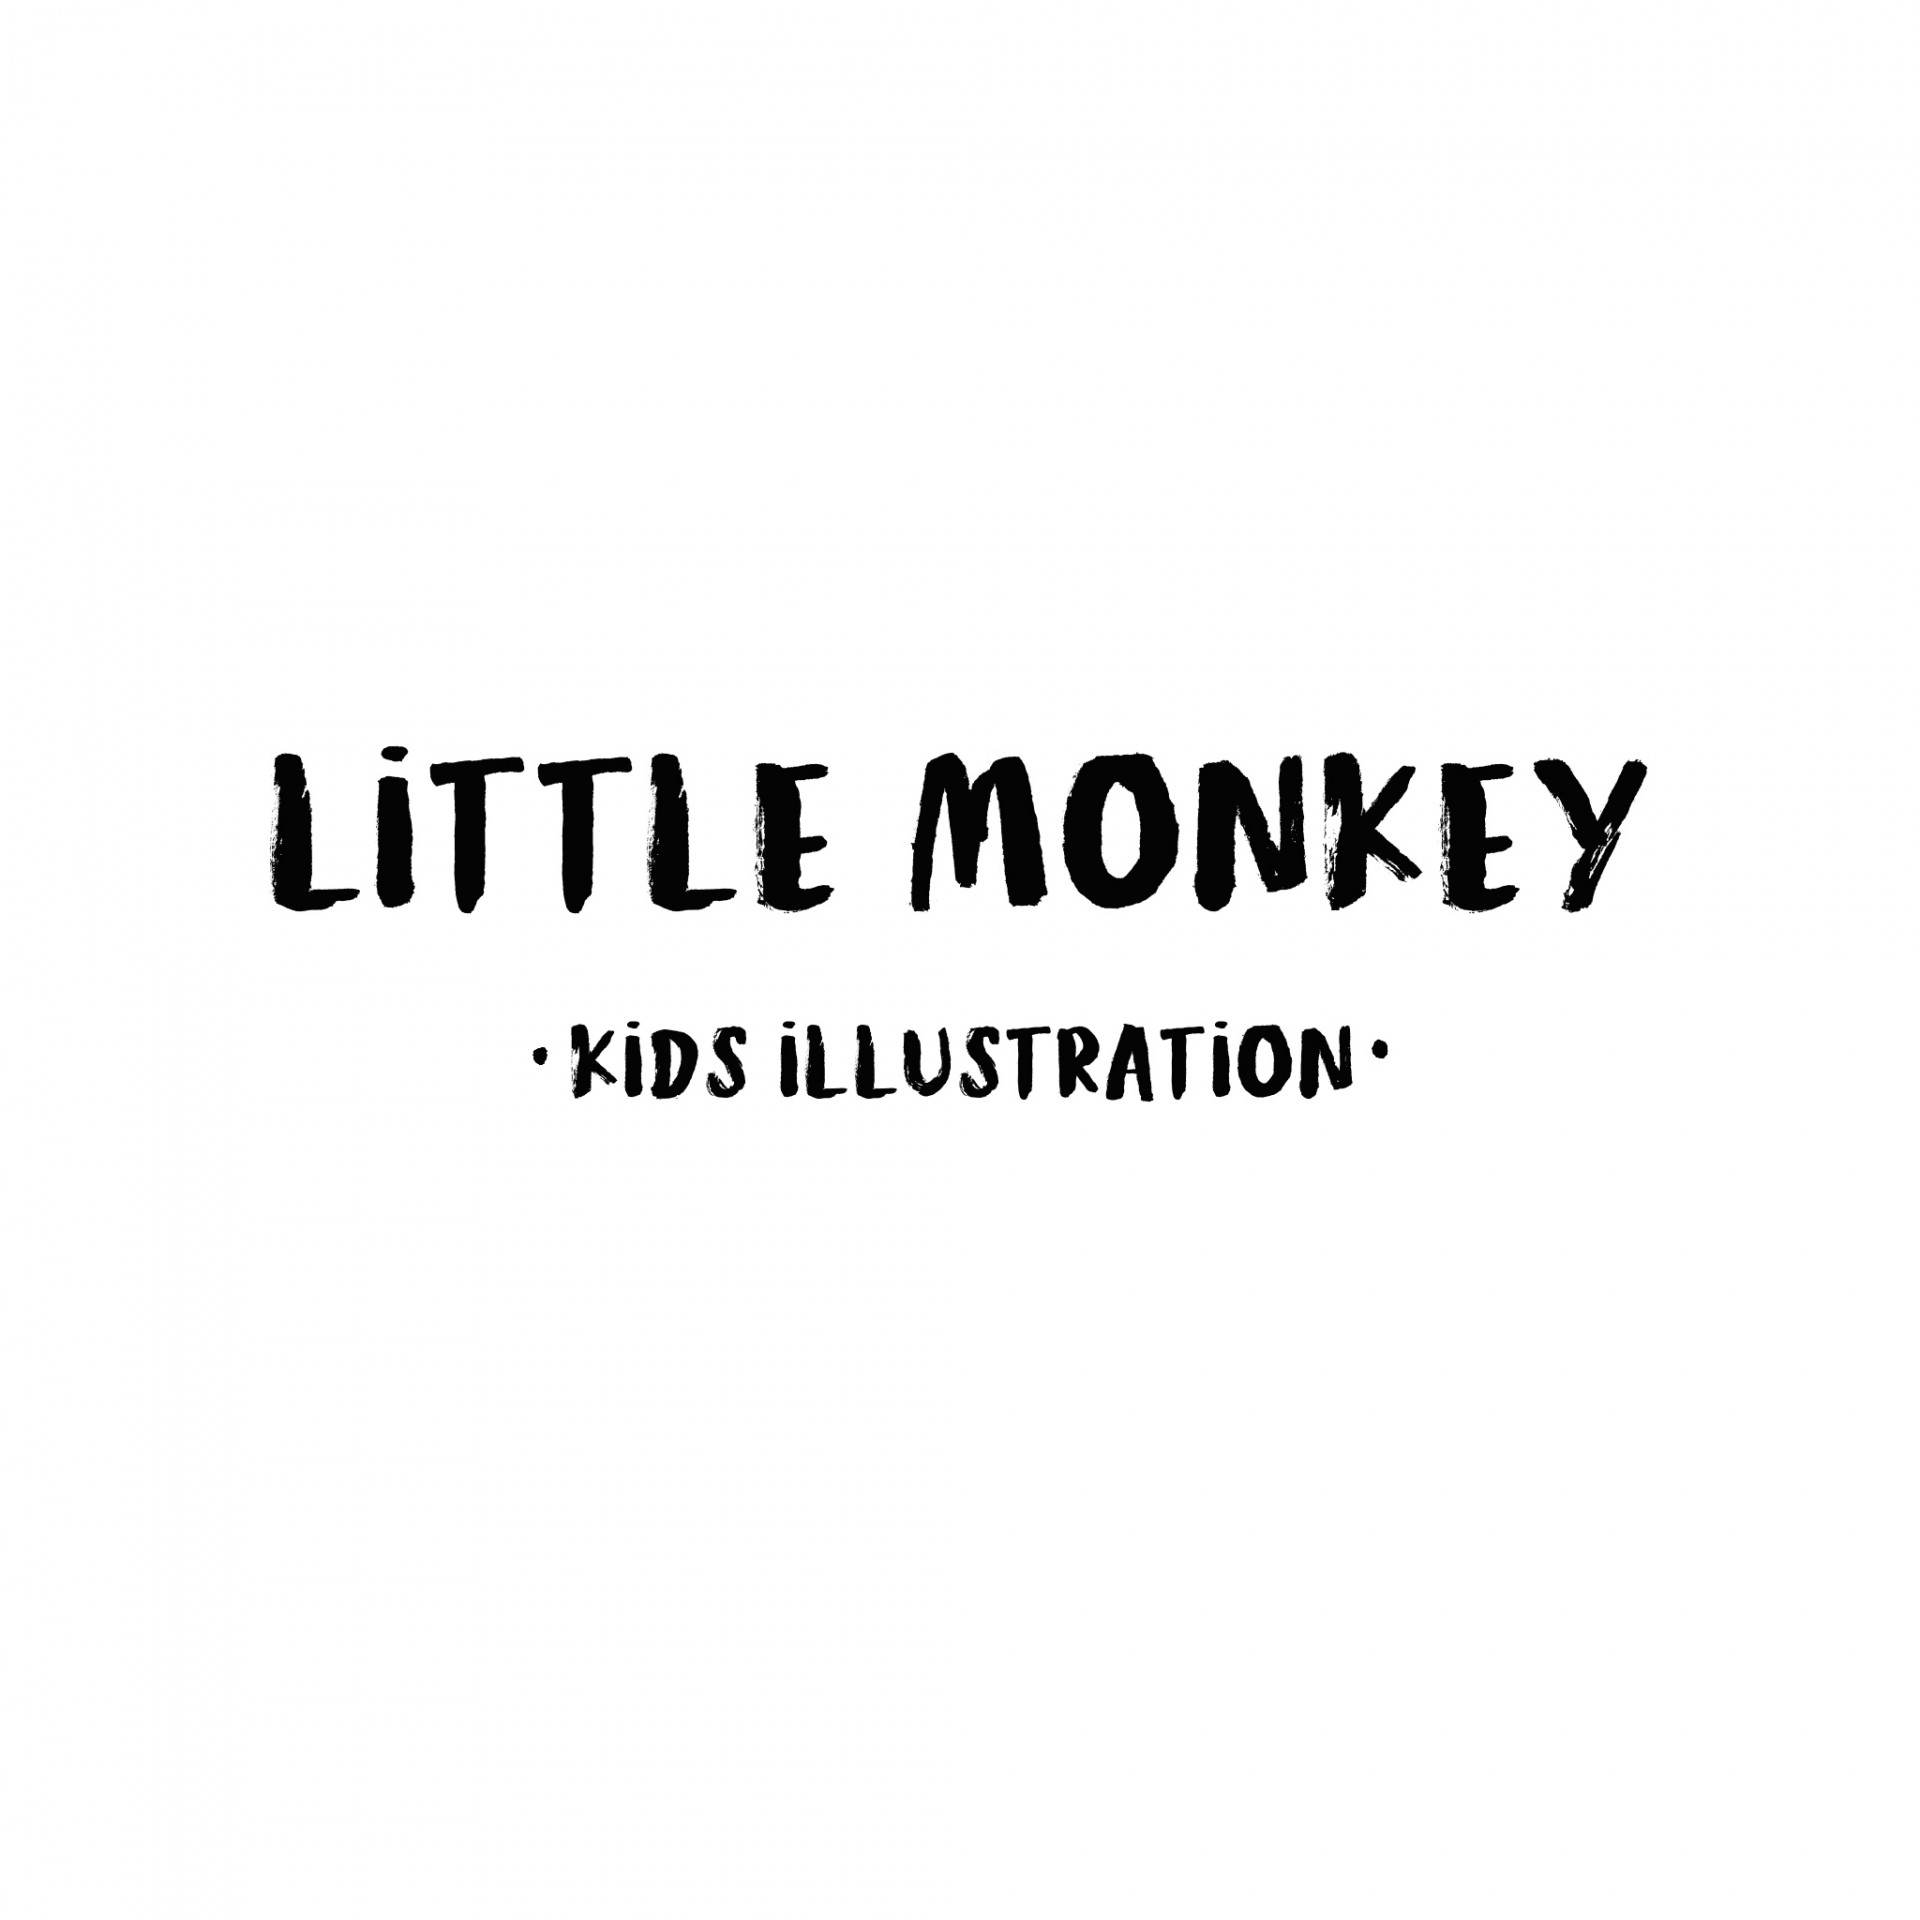 Little Monkey kids illustration